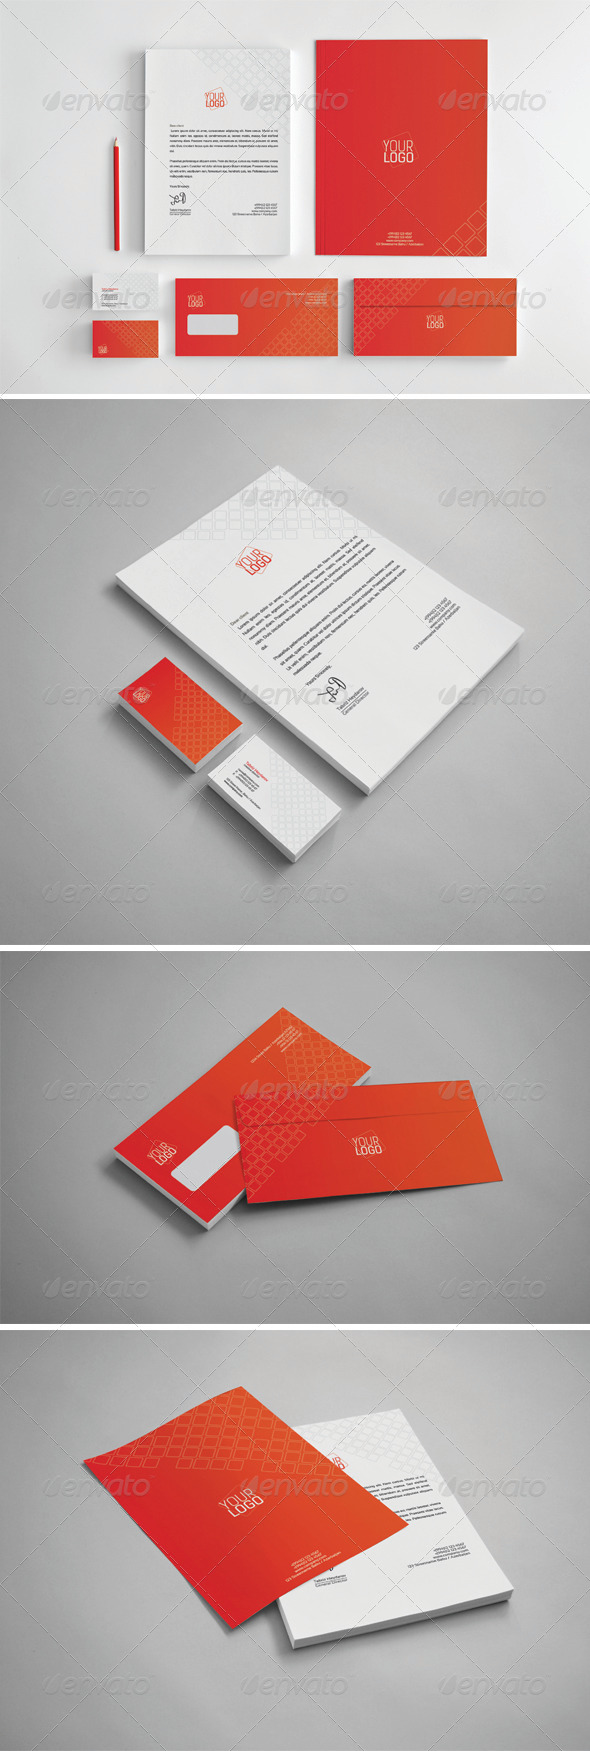 GraphicRiver Red Cubes Stationery 7127246